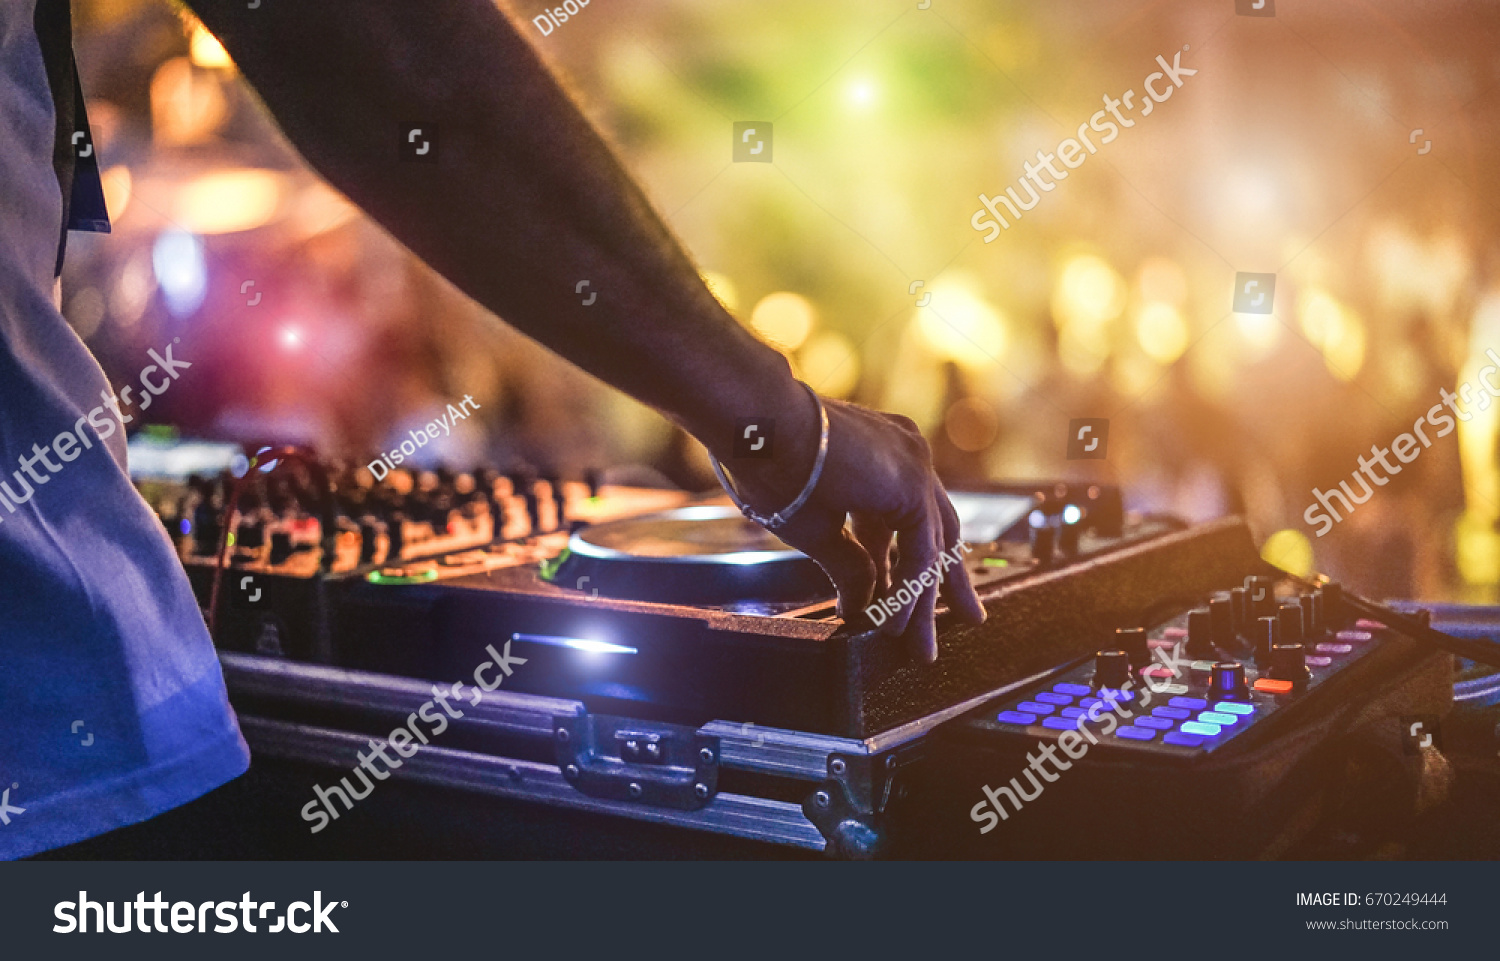 Dj mixing outdoor at beach party festival with crowd of people in background - Summer nightlife view of disco club outside - Soft focus on hand - Fun ,youth,entertainment and fest concept #670249444